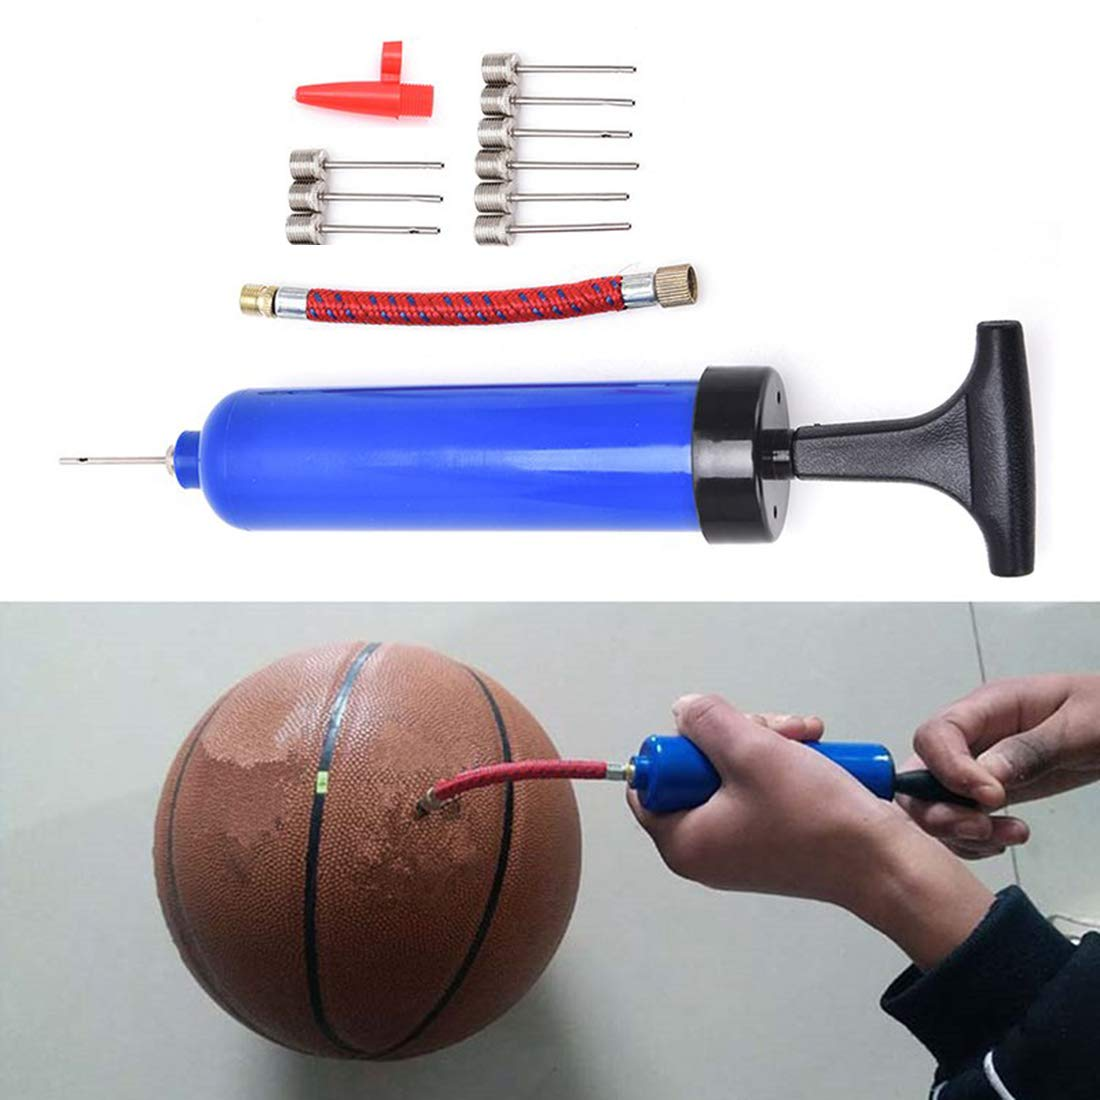 H/&S 2 Inflator Ball Pump with Needle Pins Valve Adapter Adaptor Set for Football